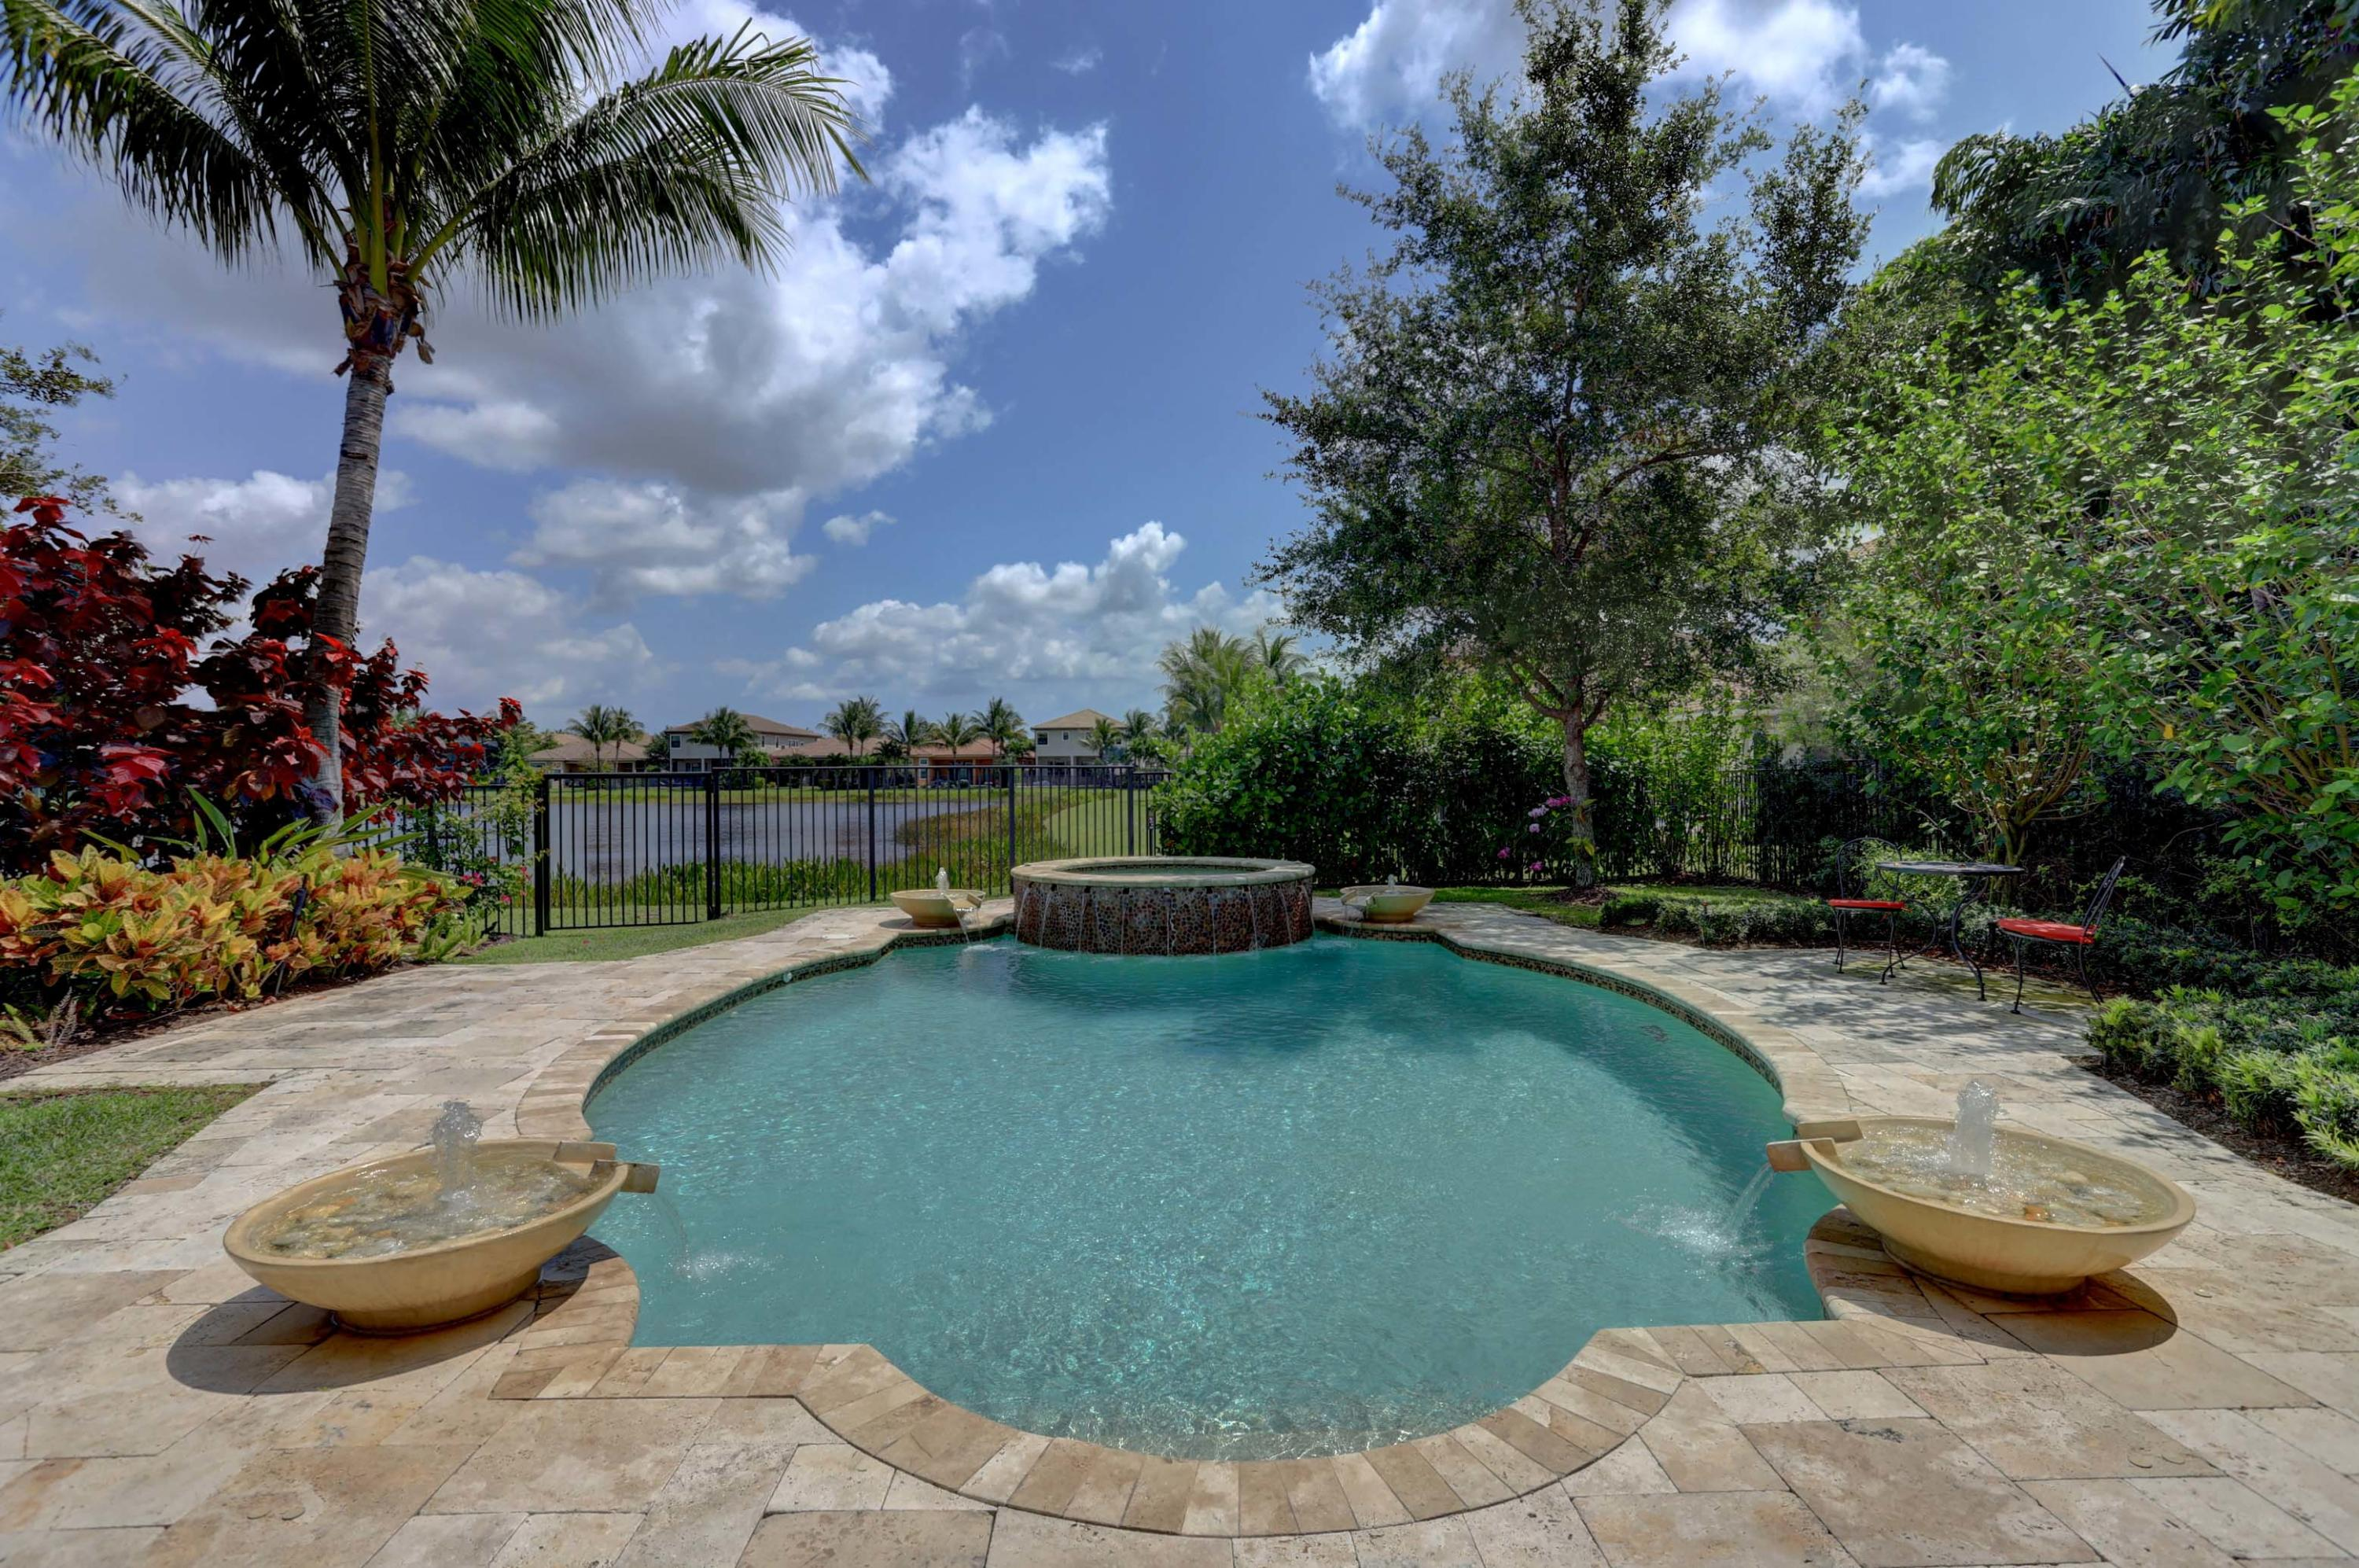 Delray Beach: The Bridges - listed at 1,125,000 (16596 Sagamore Bridge Wy)